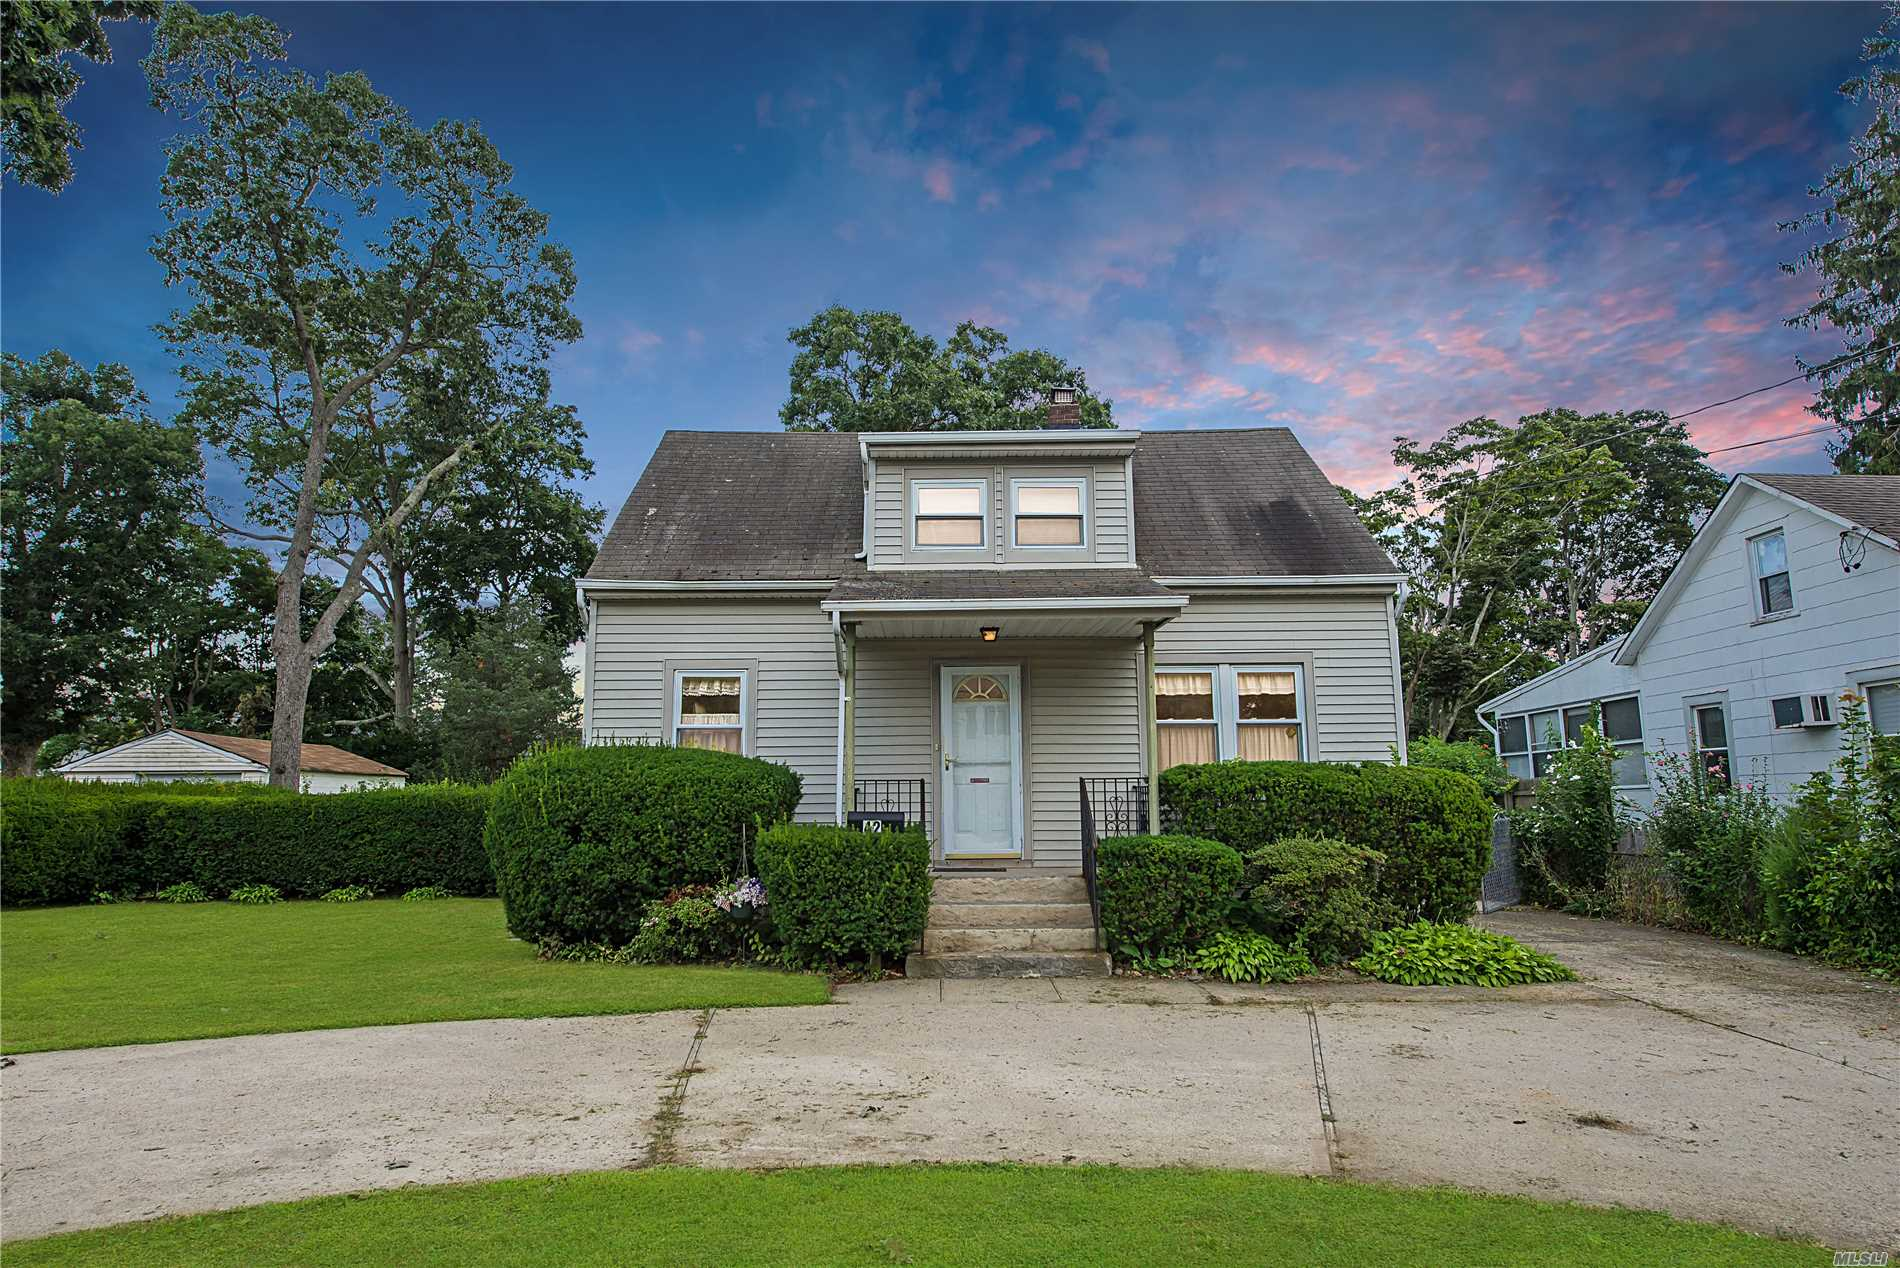 Expanded 3 Bedroom, 1 Bath Cape. Islip Schools! Large Dining Room Overlooks Landscaped Shy 1/4 Acre! 2 Large B/Rs On 2nd Floor - Along With A Common Sitting Area. H/W Floors Under Carpet. Extended Circular Driveway For Plenty Of Parking. Gas Cooking! Priced To Sell!